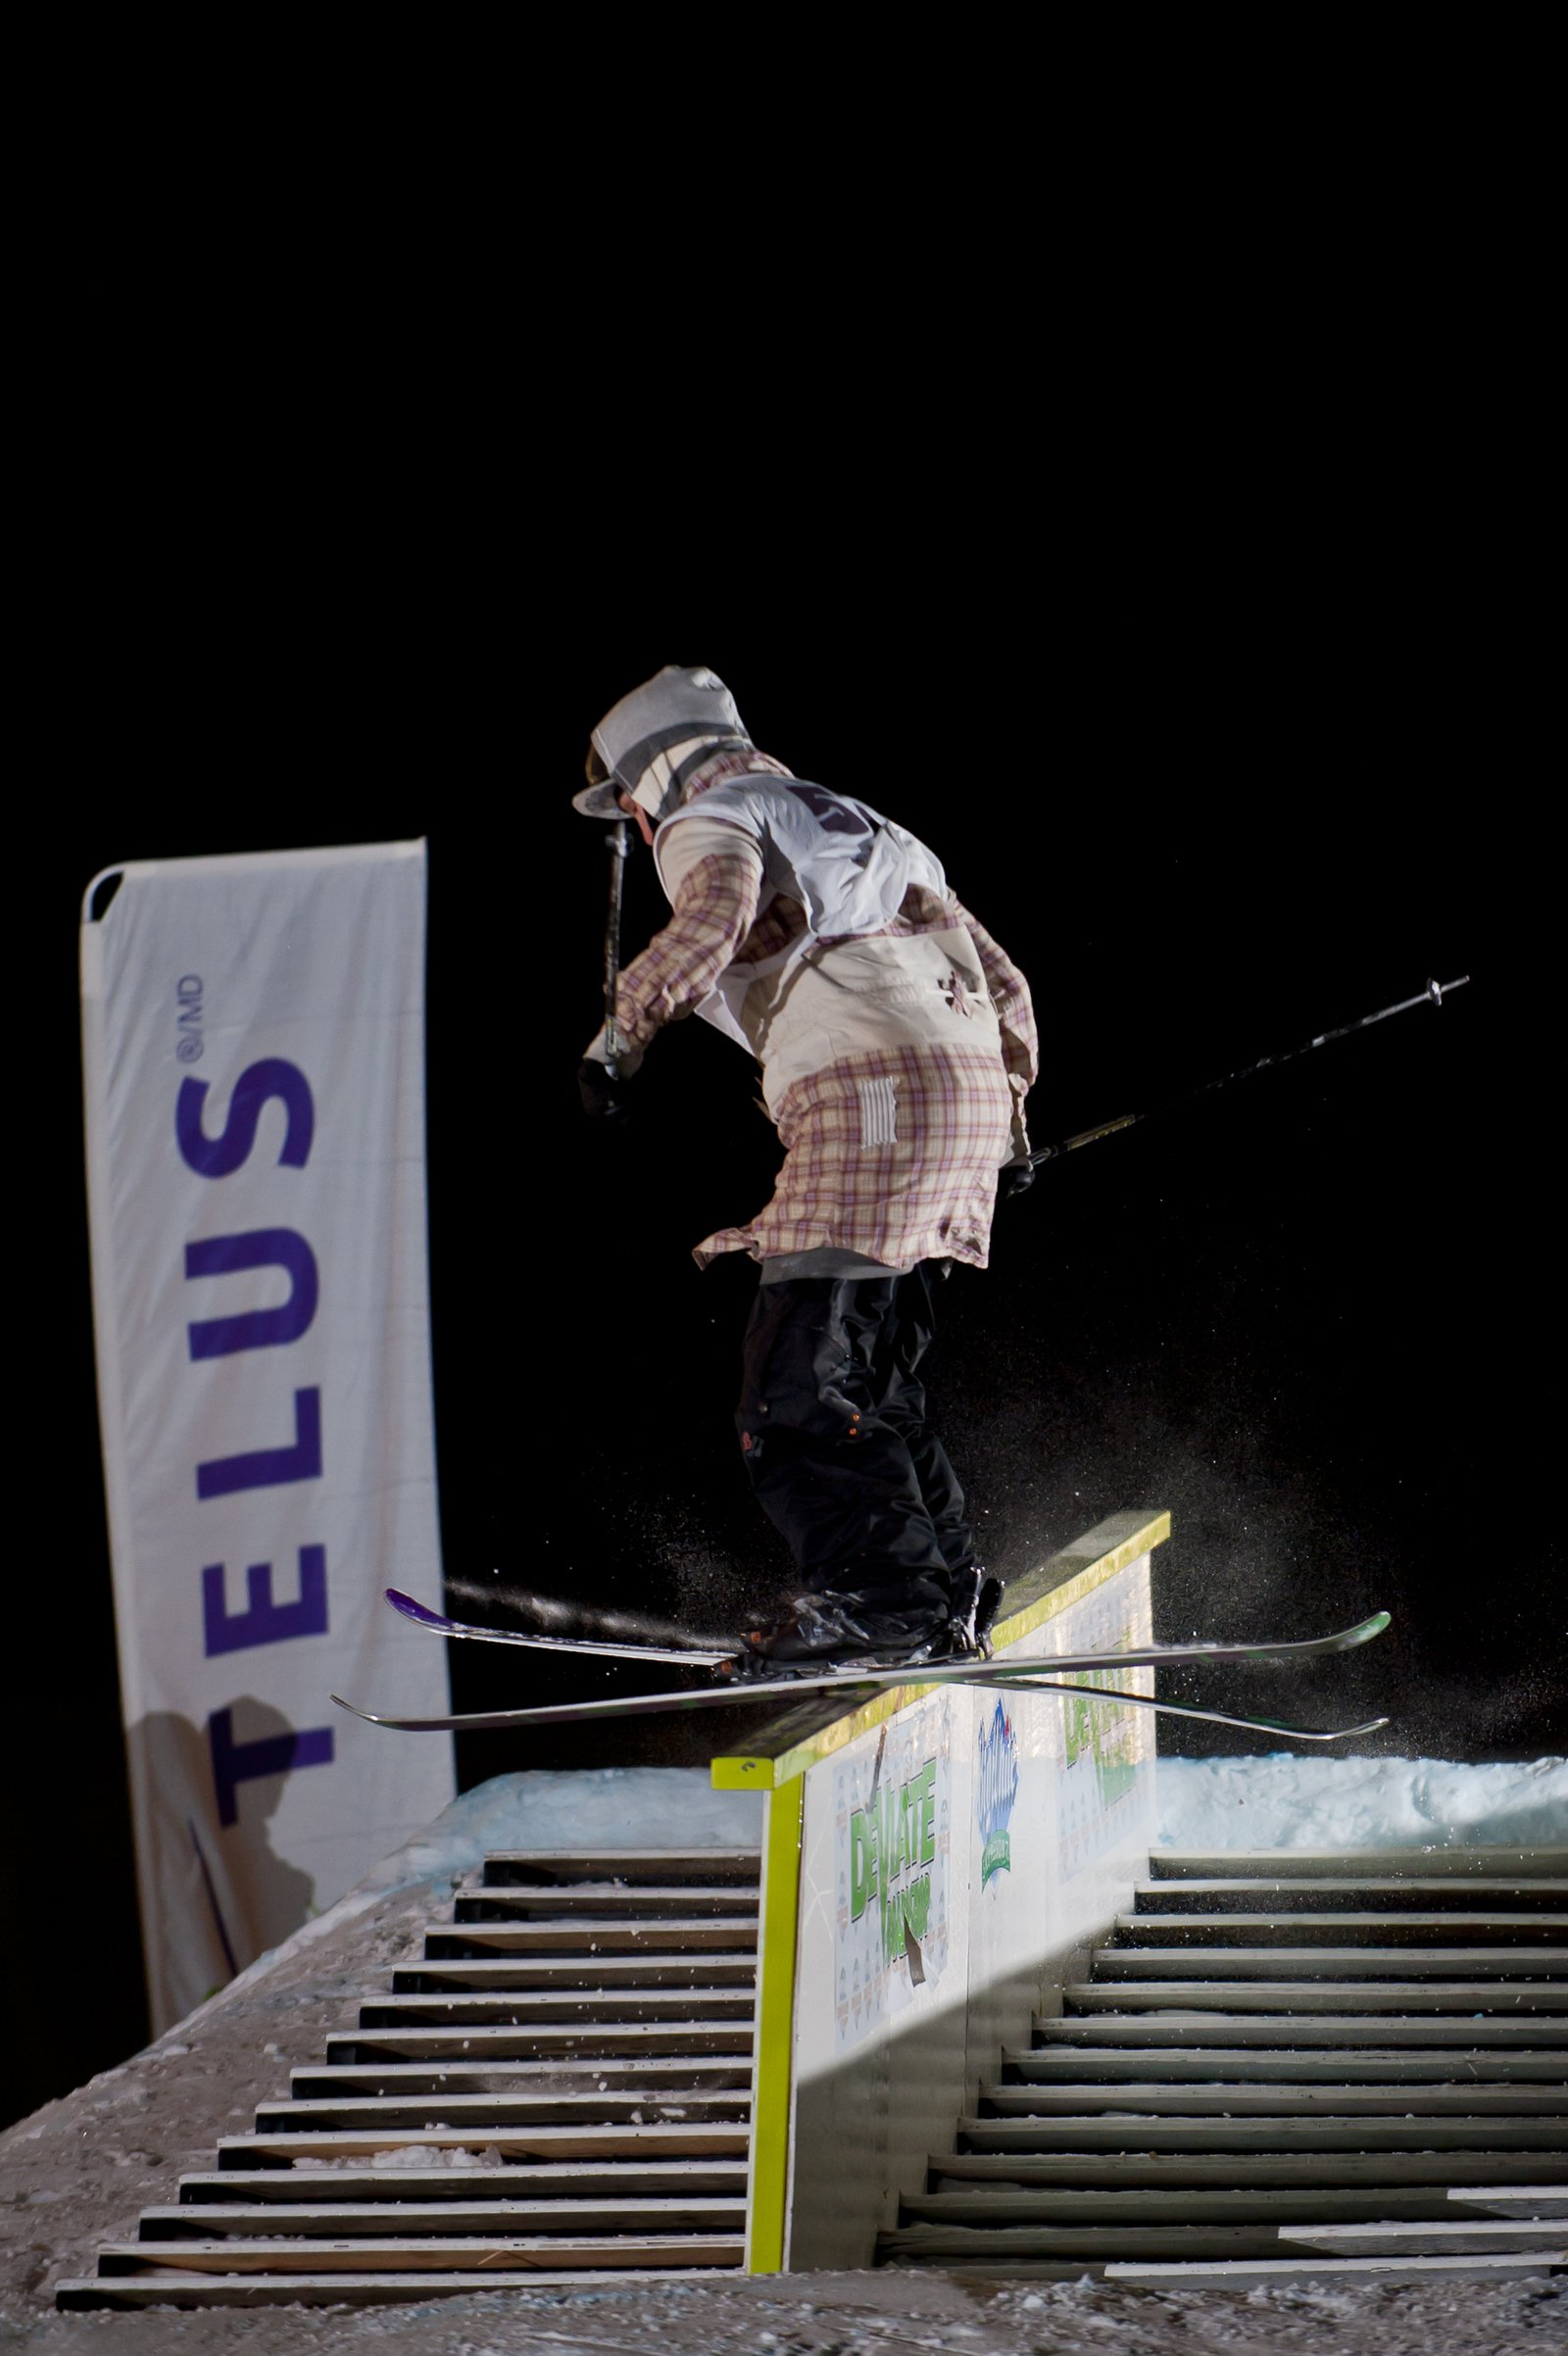 Night Rail Jam #3 pic